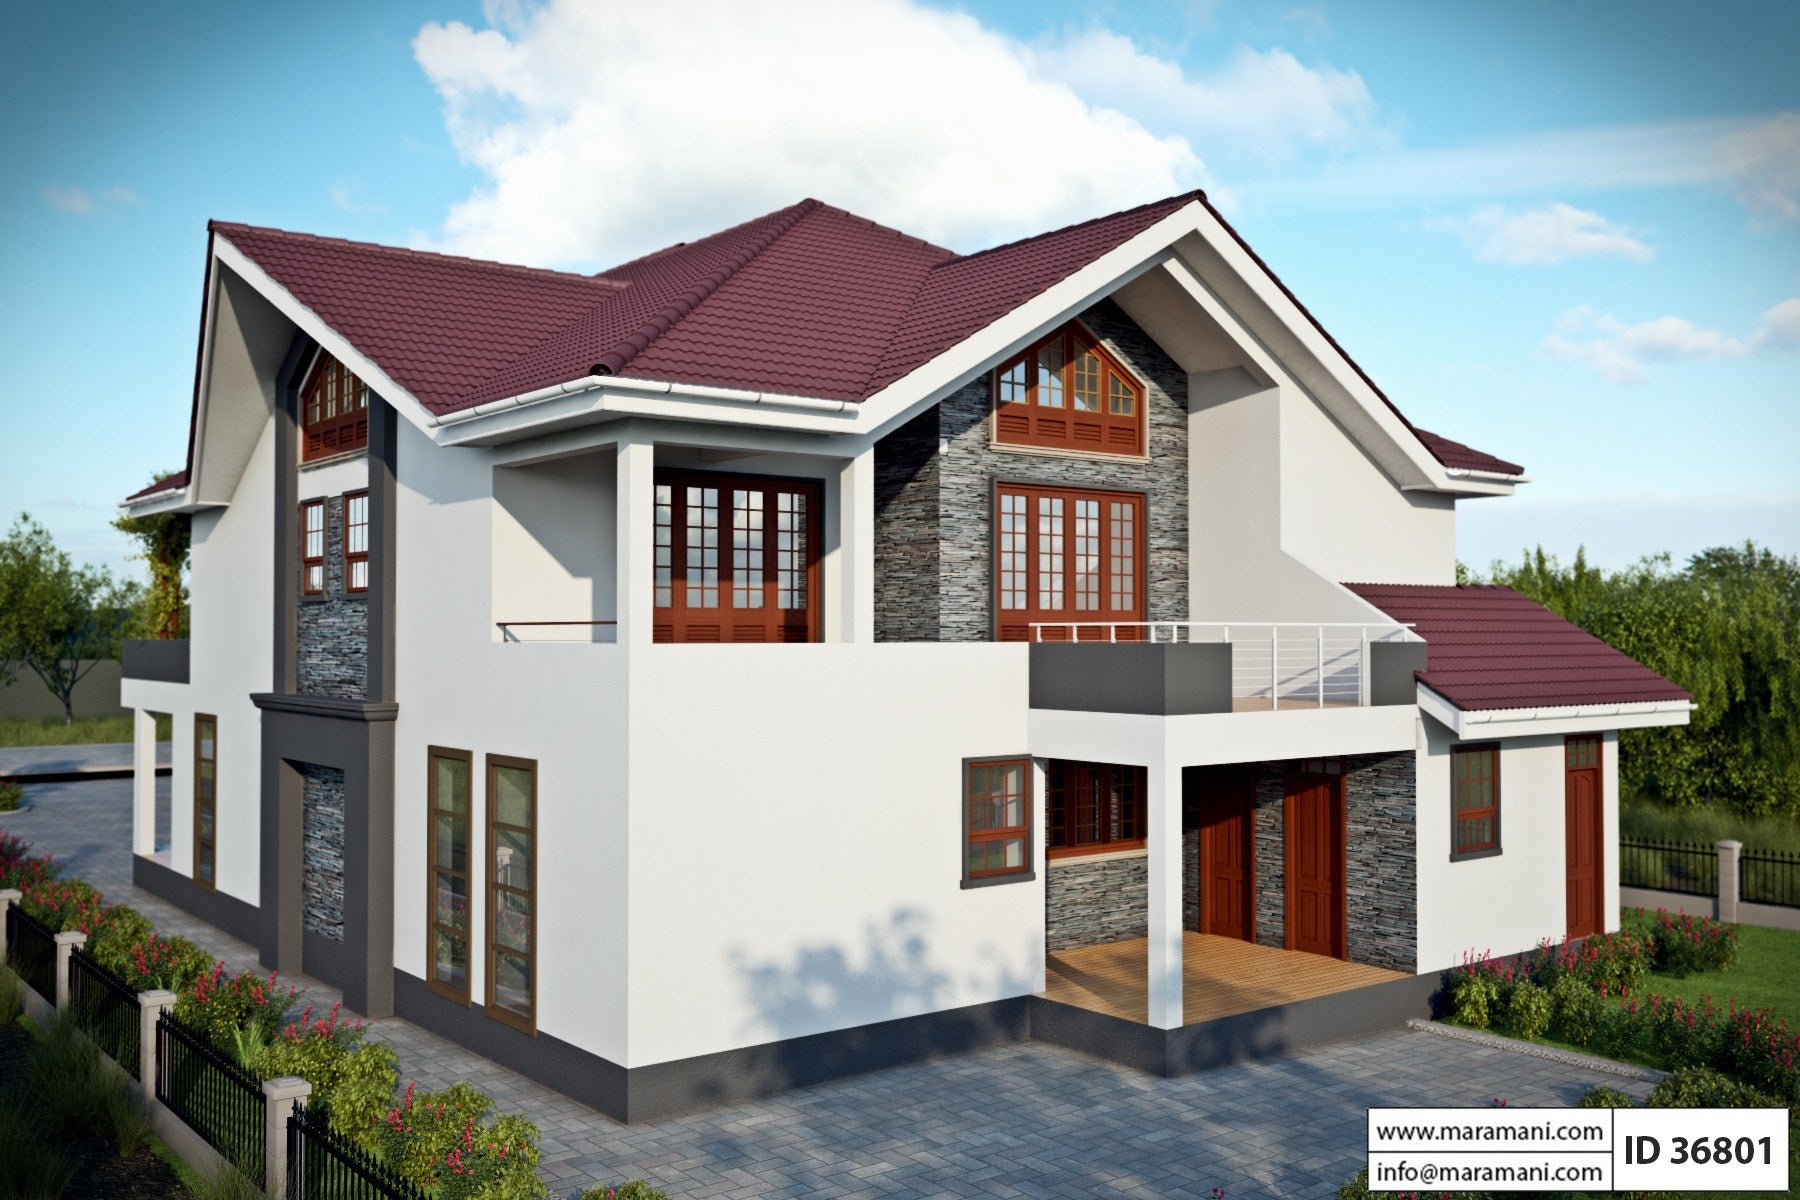 six bedroom house plan id 36801 house designs by maramani rh maramani com six bedroom house for sale six bedroom house fort smith arkansas